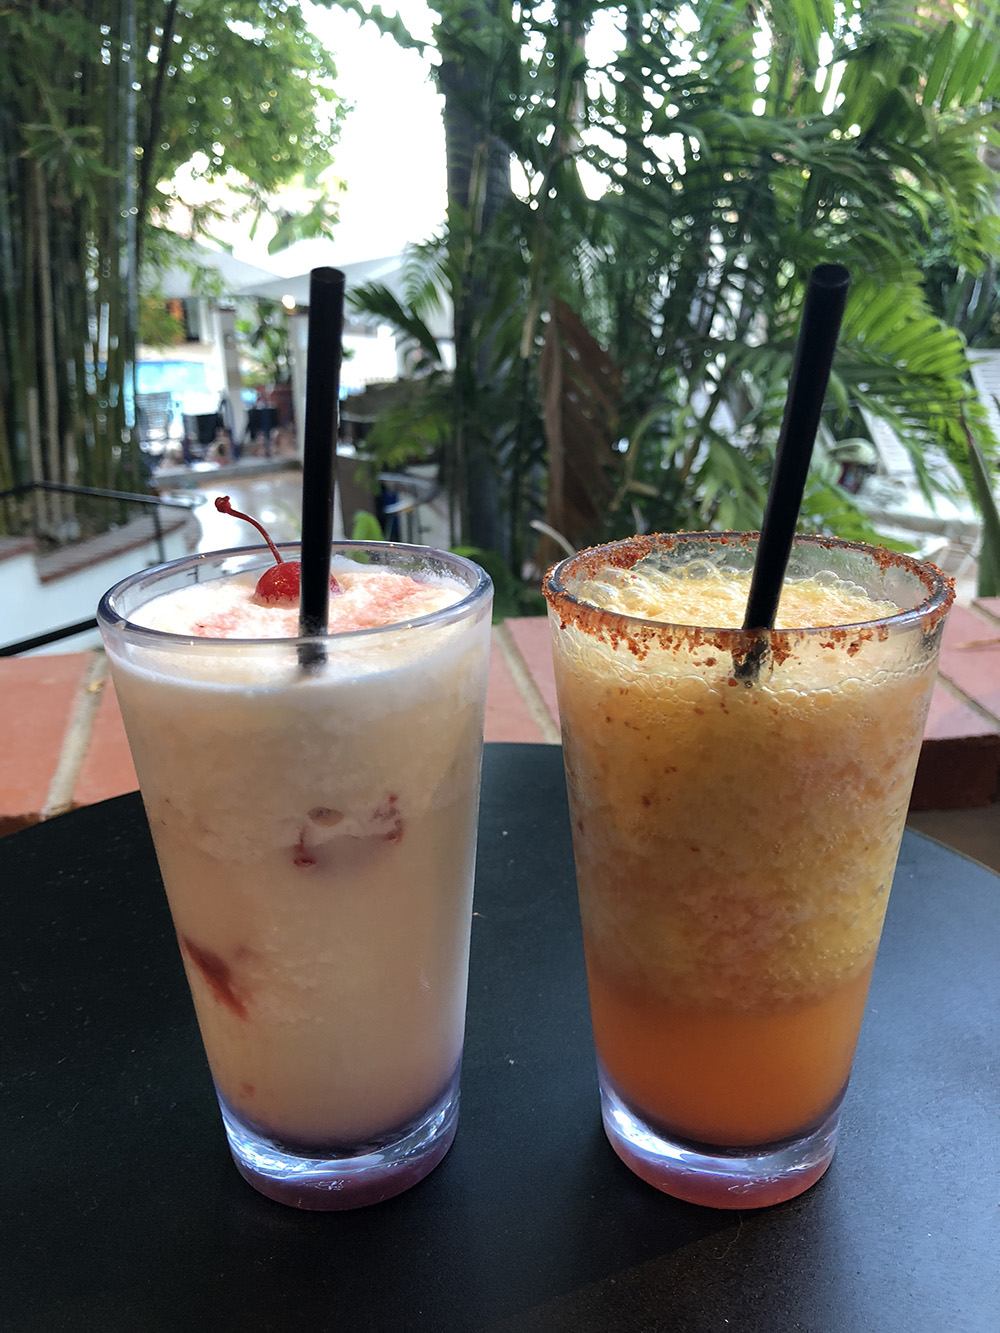 The Lava Flow and Mango Jalapeño Margarita.